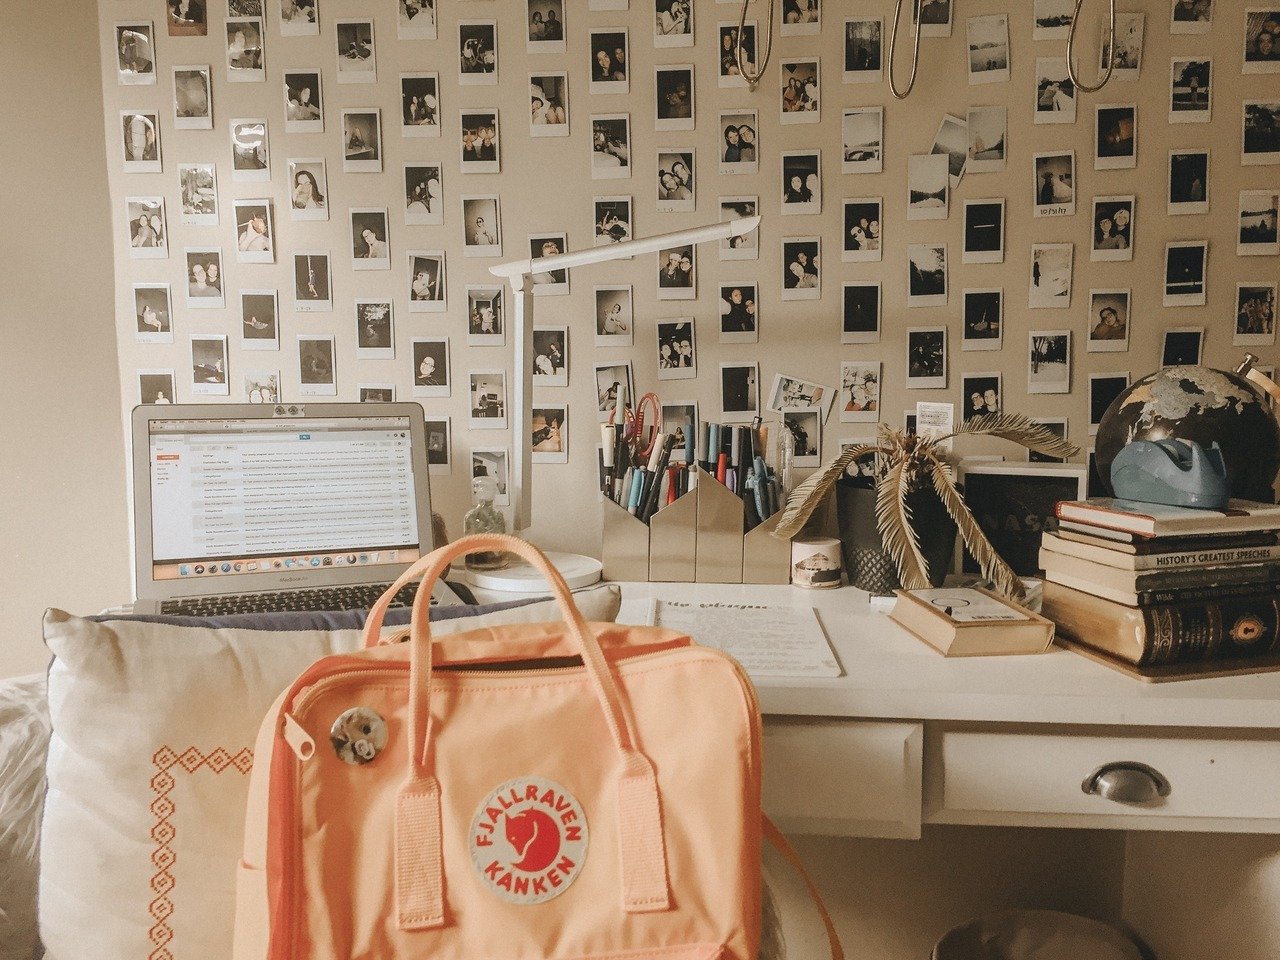 Productive tasks and procrastinating are two different things; but, when it comes to putting off your assignment, some activities are better than others.